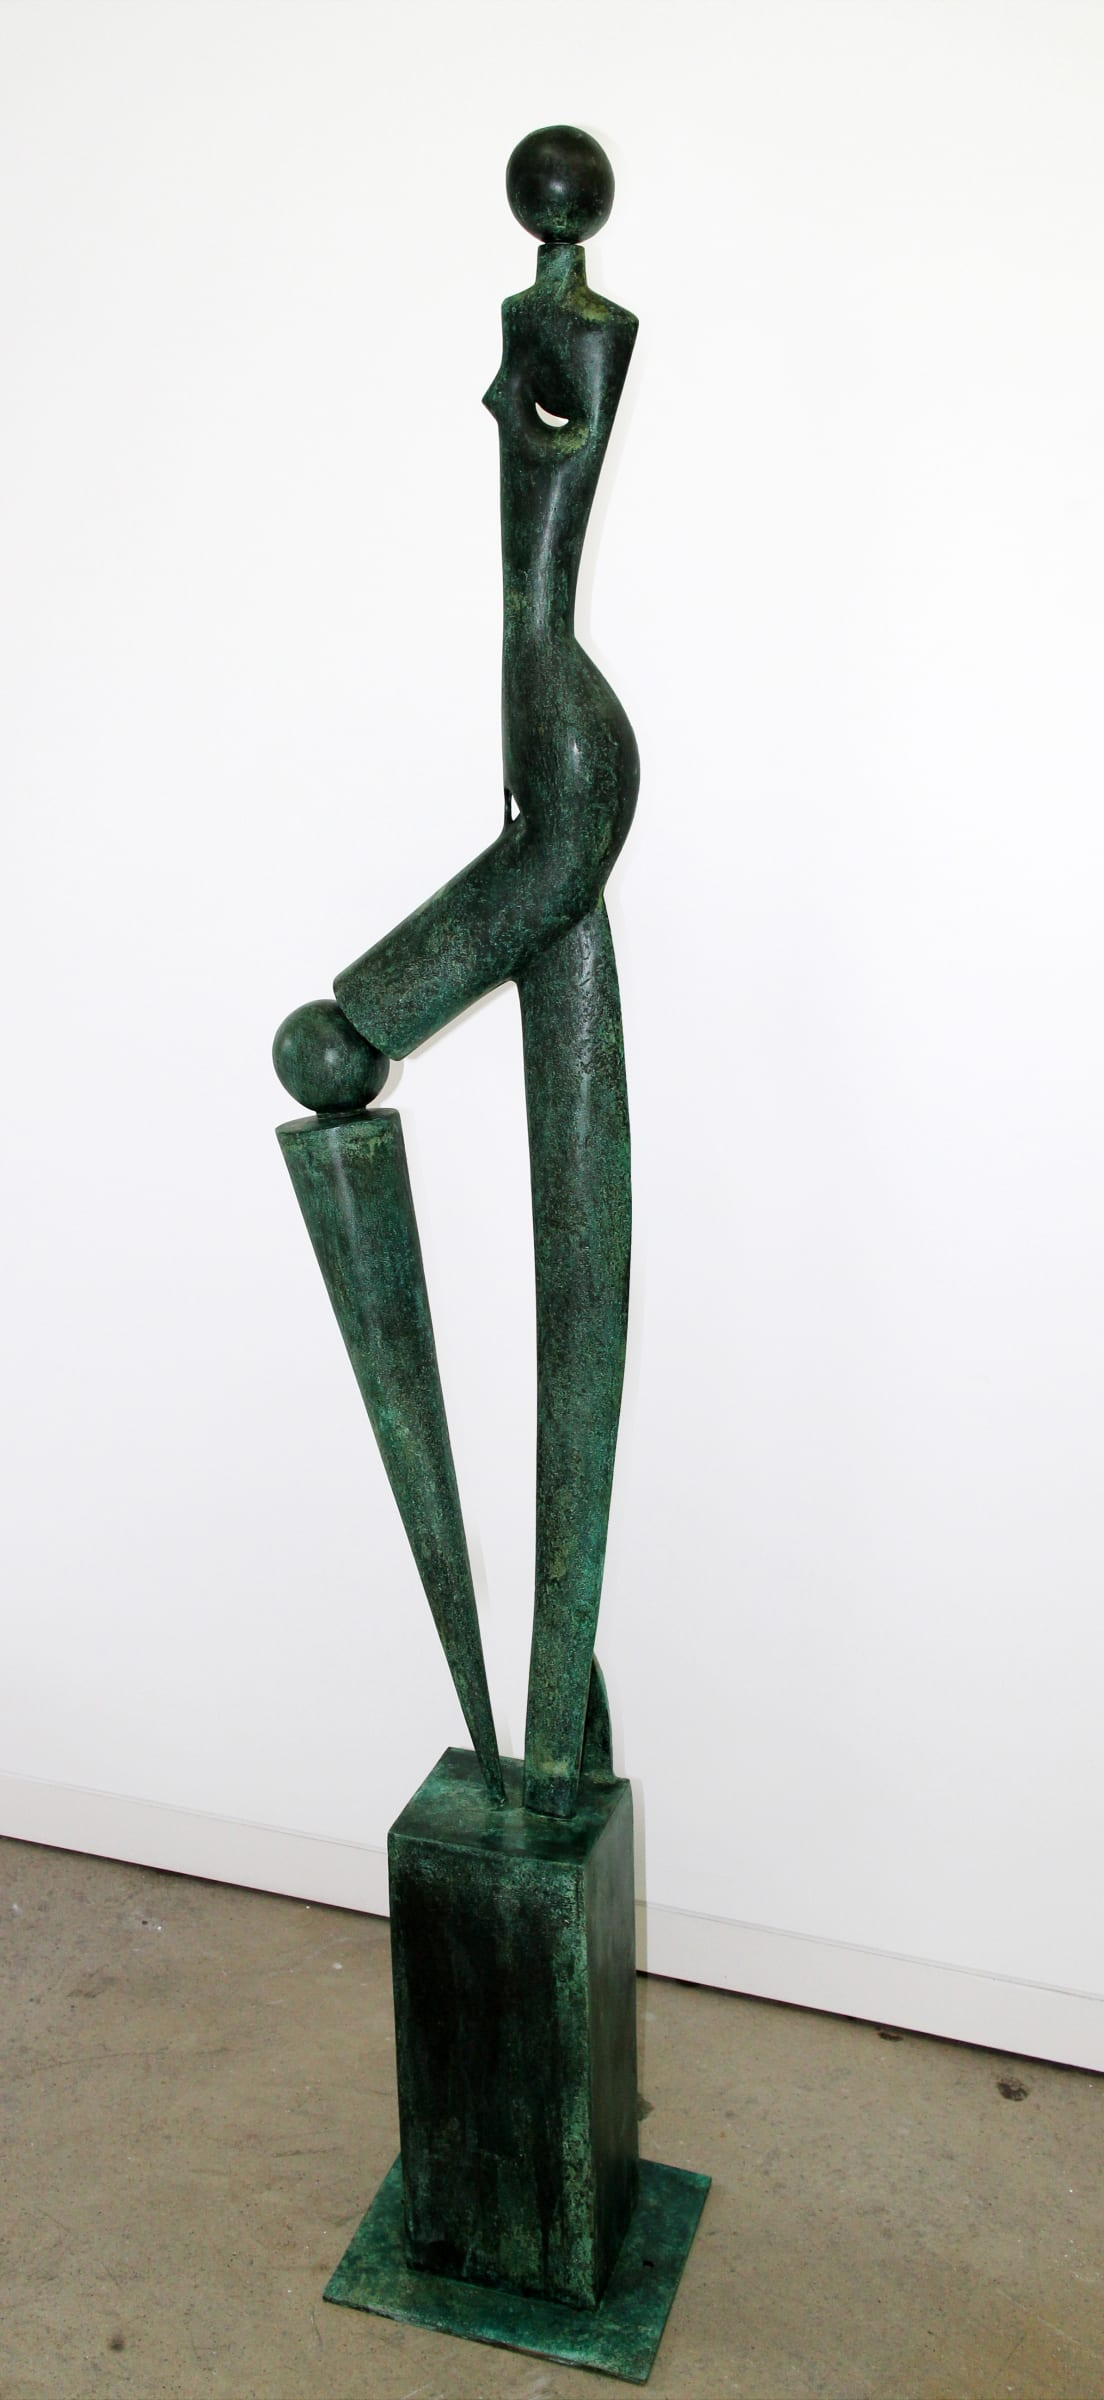 <span class=&#34;link fancybox-details-link&#34;><a href=&#34;/exhibitions/59/works/artworks4992/&#34;>View Detail Page</a></span><div class=&#34;medium&#34;>Cast Patinated Bronze</div> <div class=&#34;dimensions&#34;>79.9 x 13.2 x 13 in<br />203 x 33.5 x 33 cm</div>